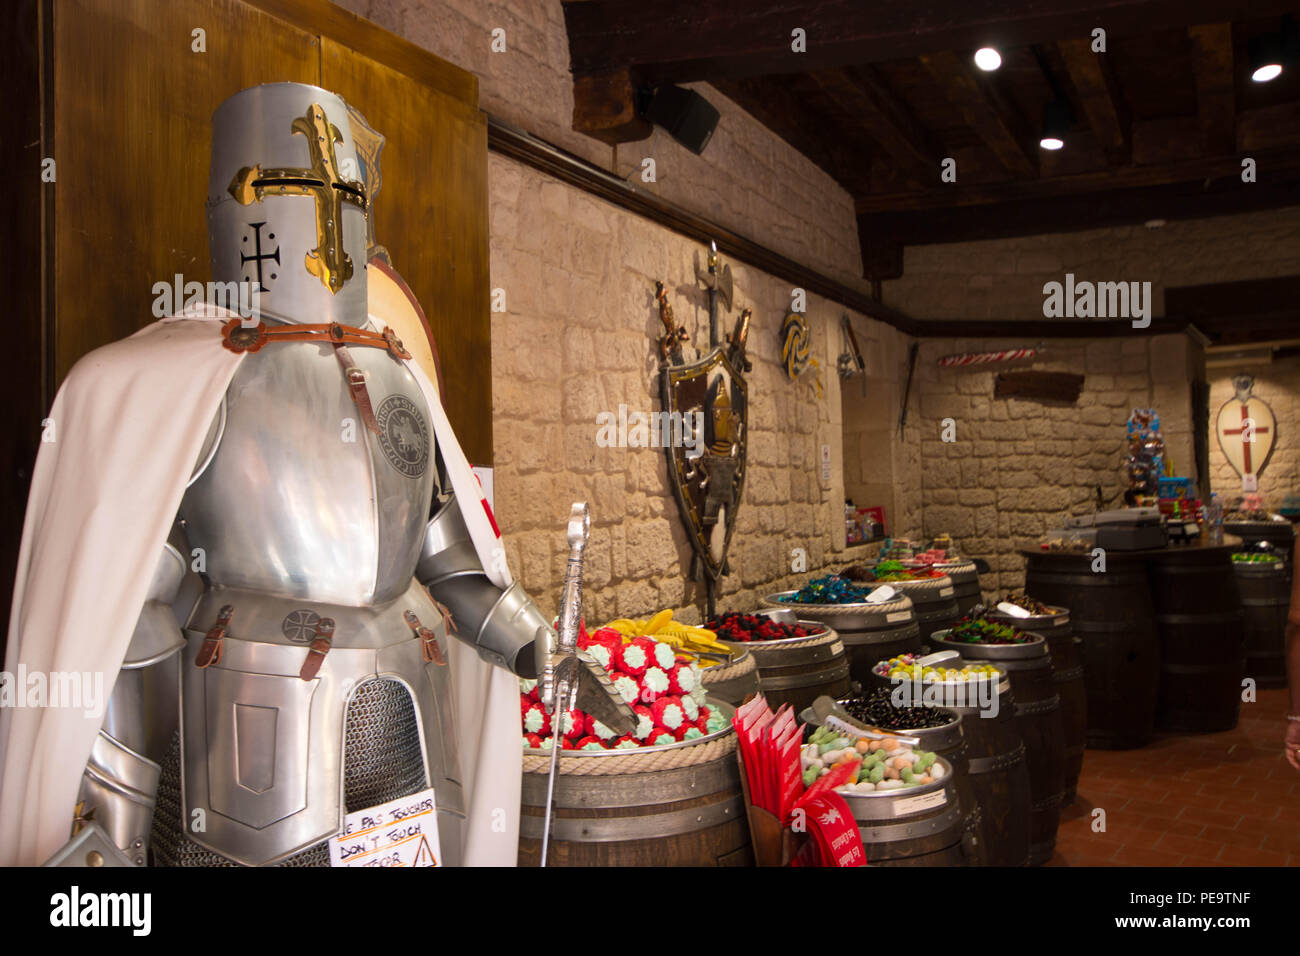 Candy shop in Carcassonne with medieval ambientance and knight in the entrance. - Stock Image